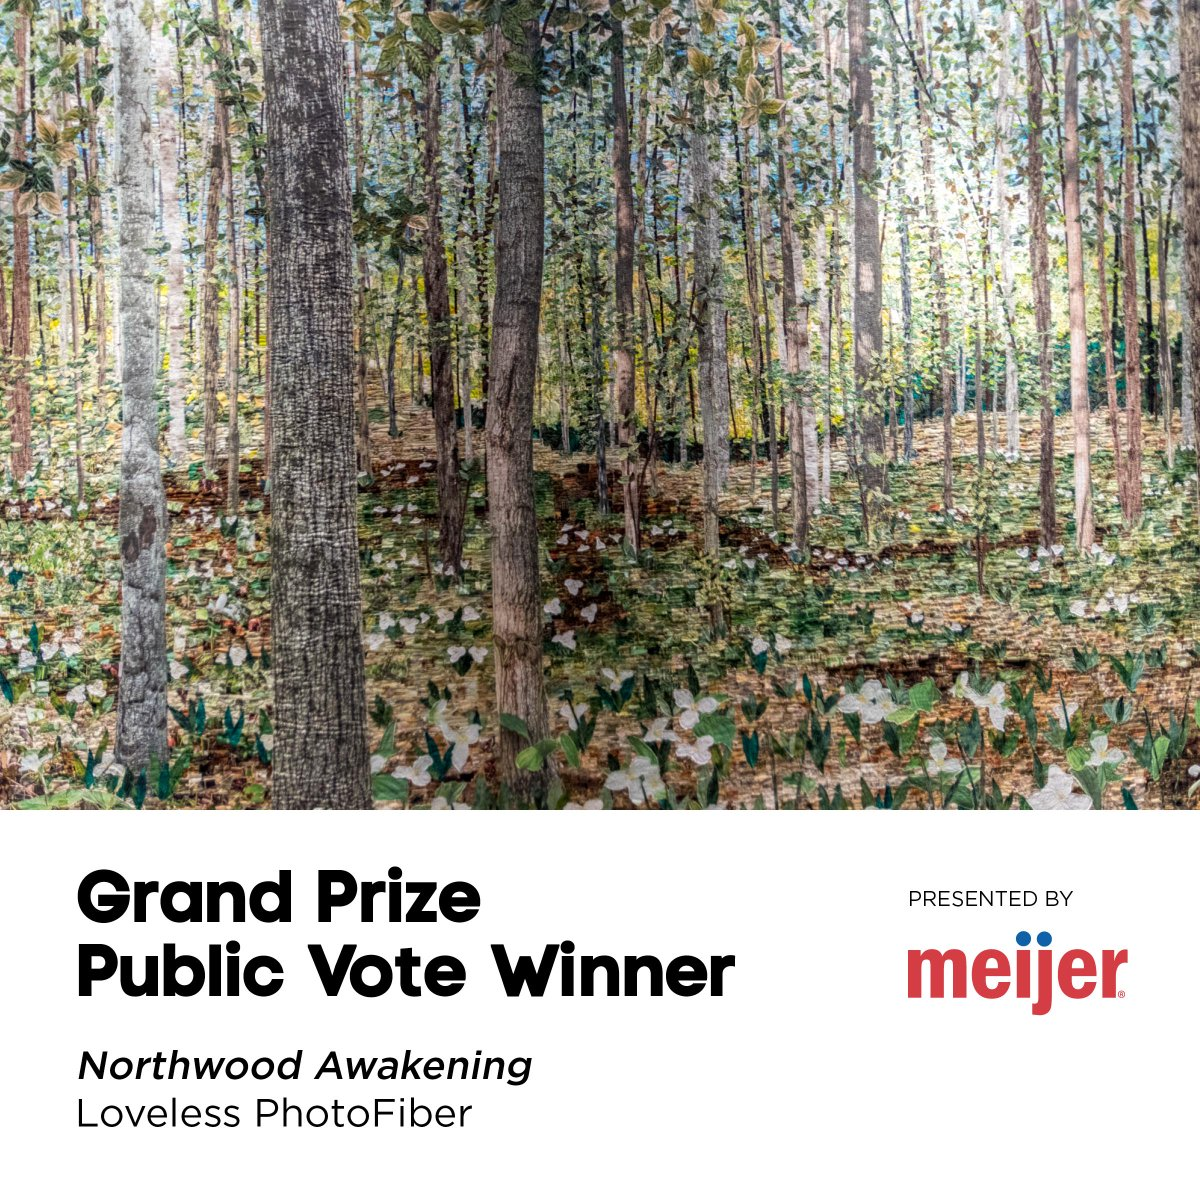 The winner of the #ArtPrize7 Public Vote $200,000 Grand Prize: http://t.co/f2Zgv40xVD